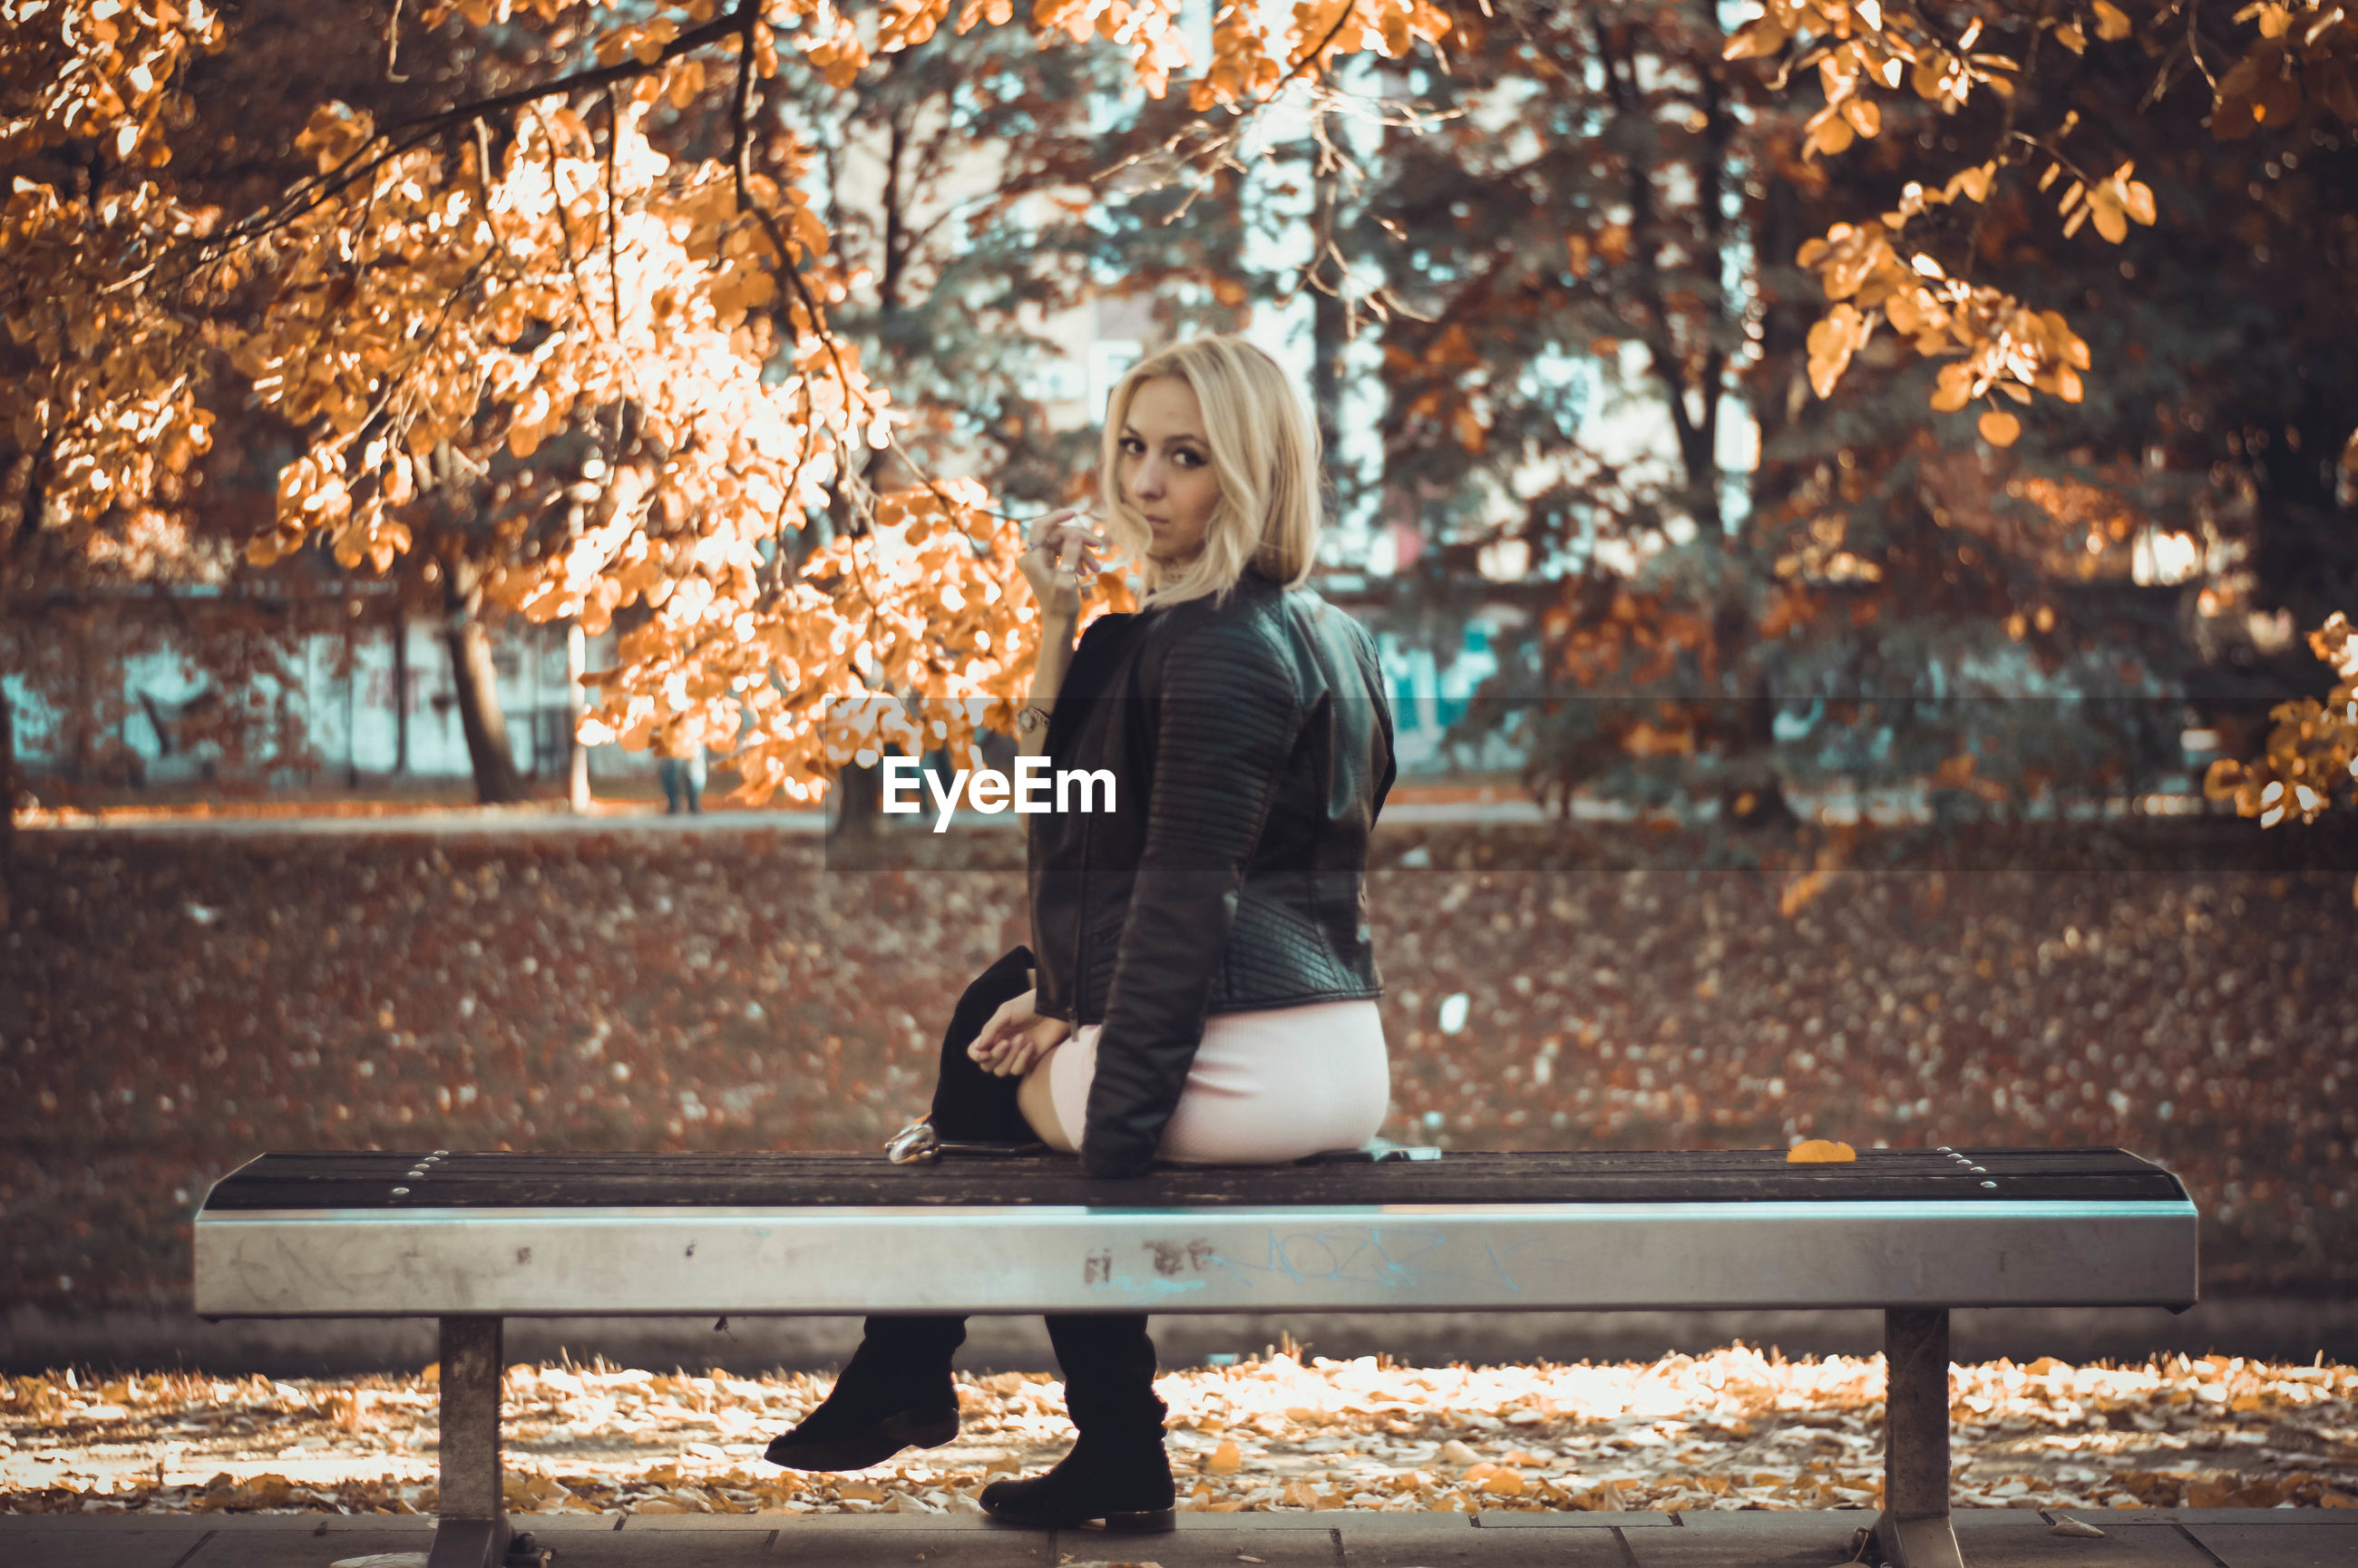 Portrait of beautiful woman sitting on bench at park